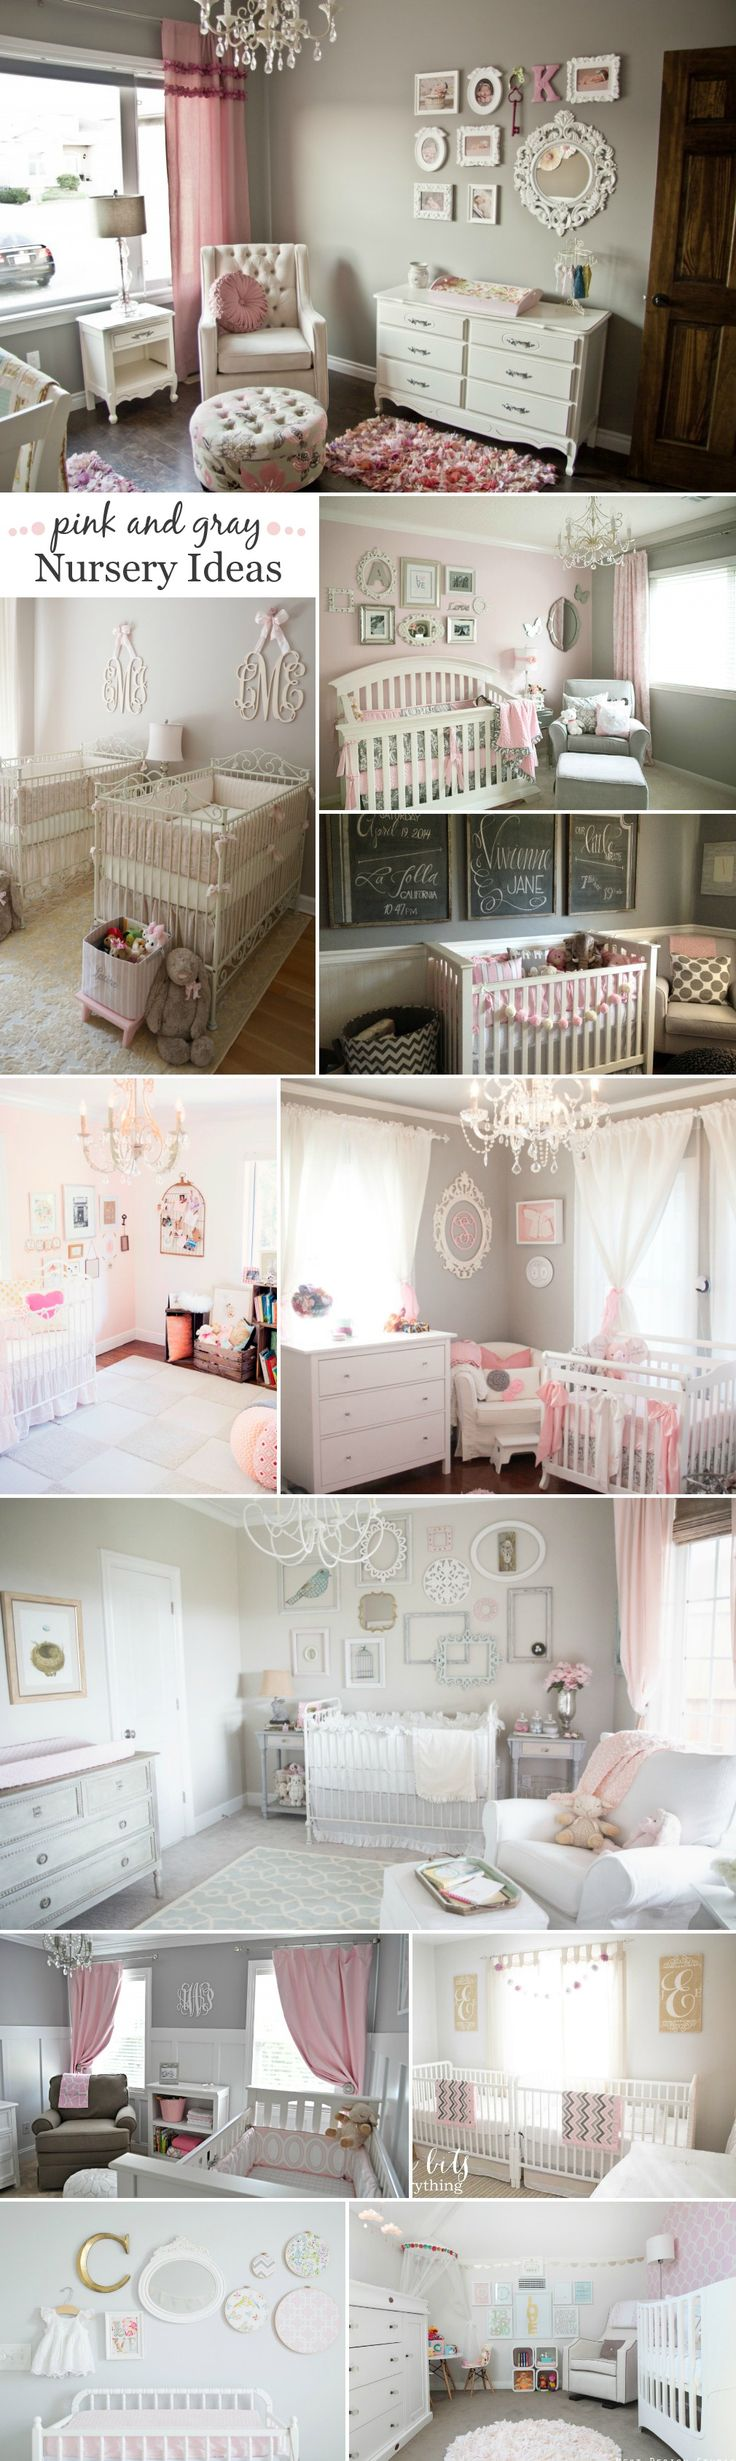 Pink and Gray Nursery Ideas - 11 looks we love! | ProjectNursery.com